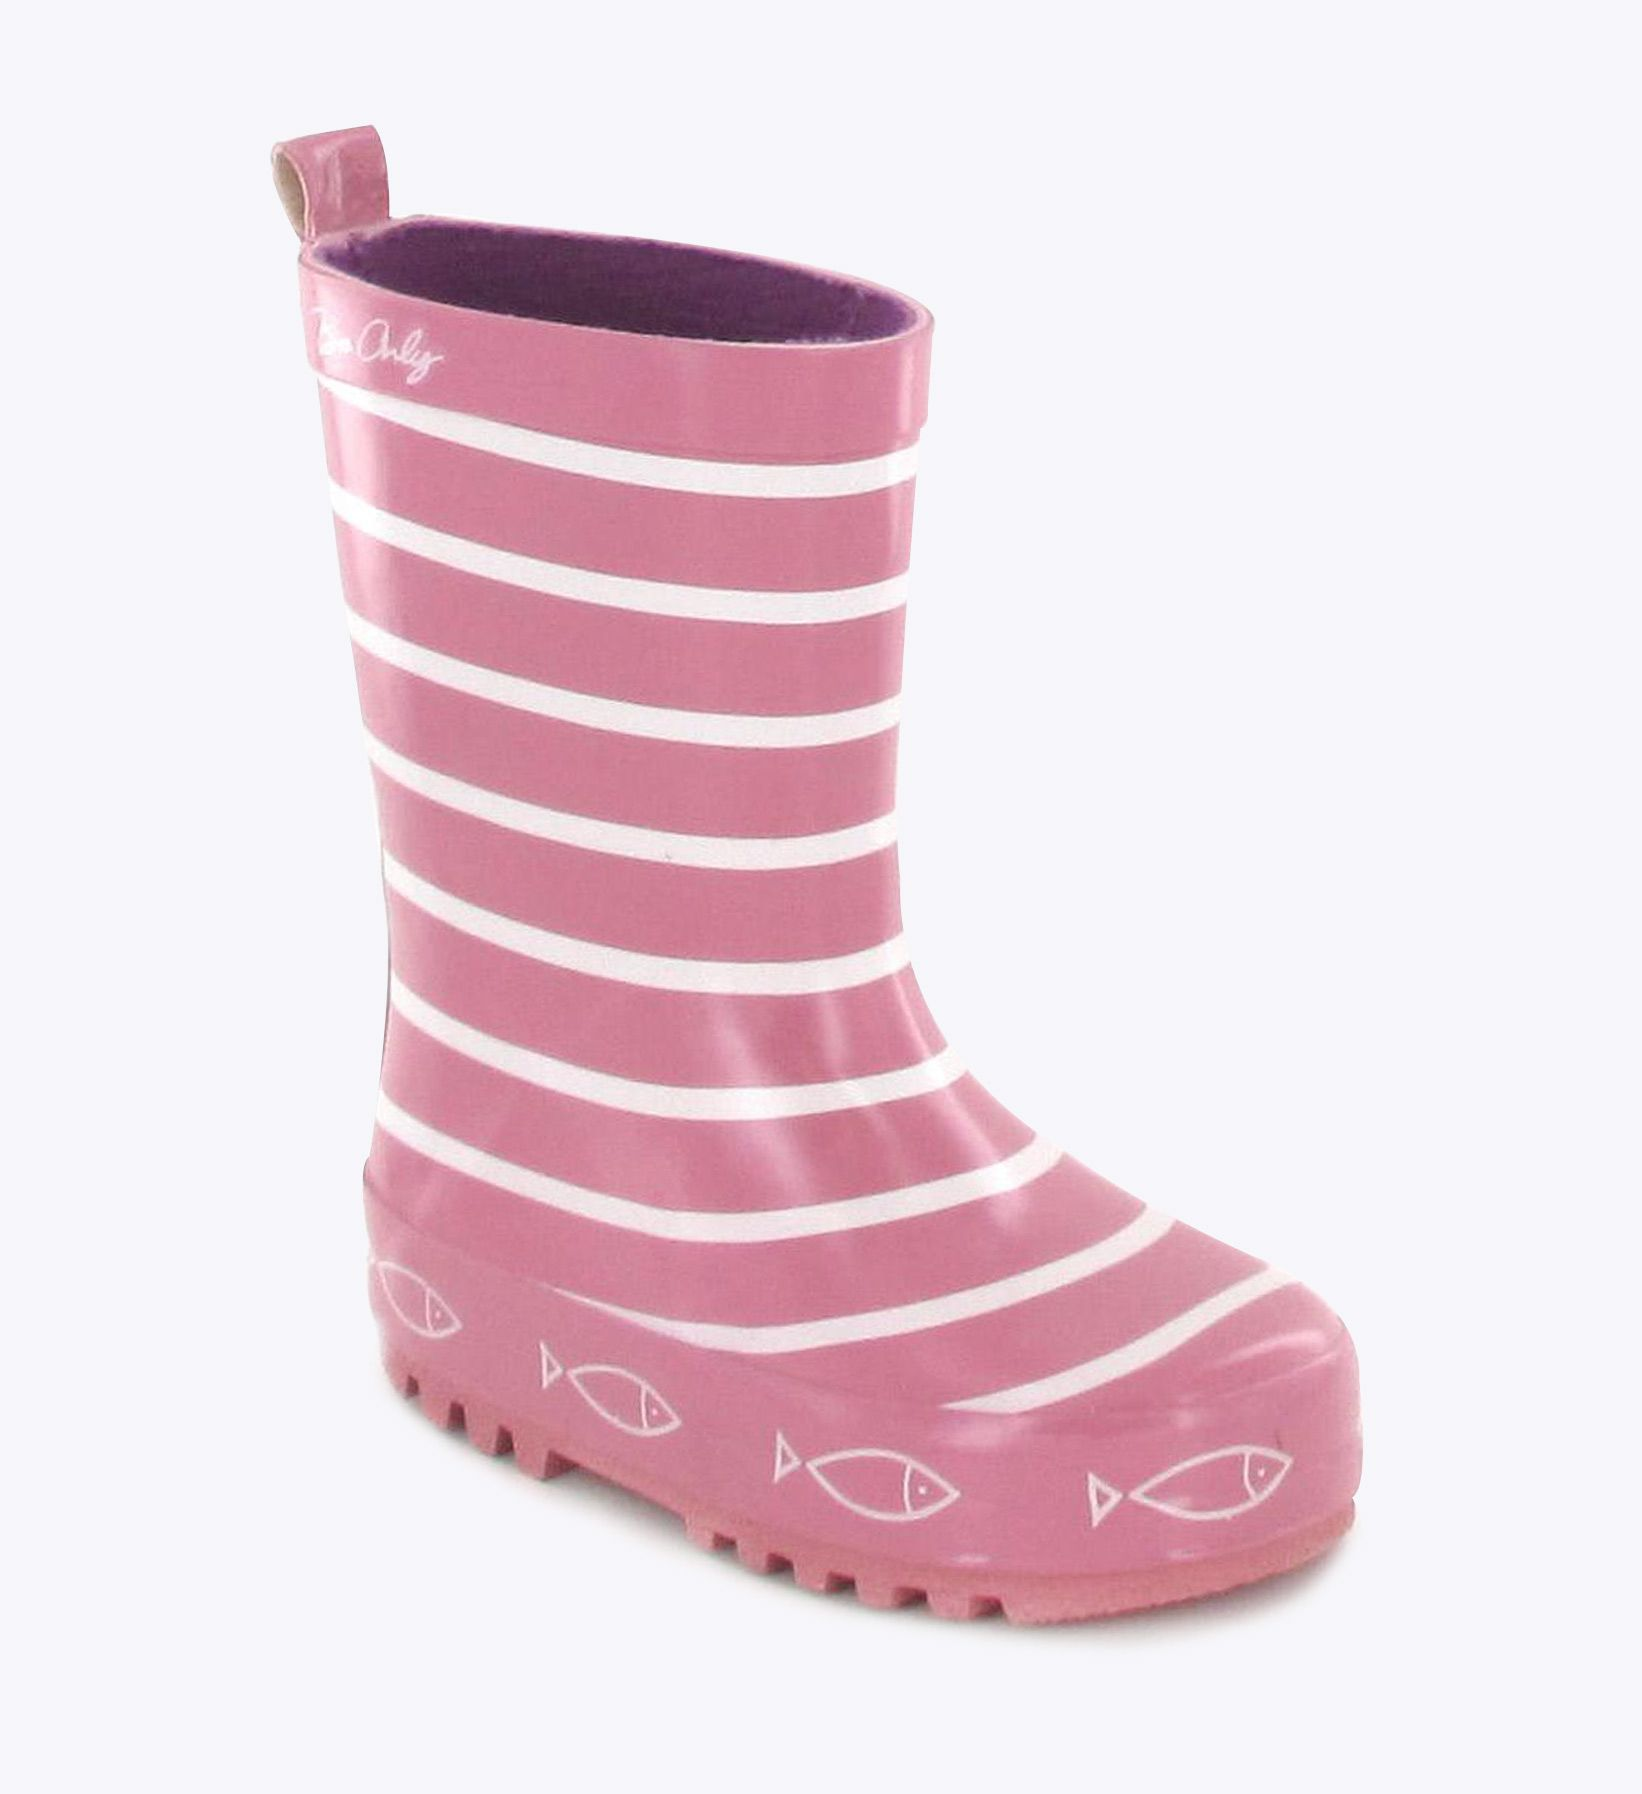 e9c153b34ae06 Bottes de pluie Be Only TIMOUSS Rose www.be-only.com